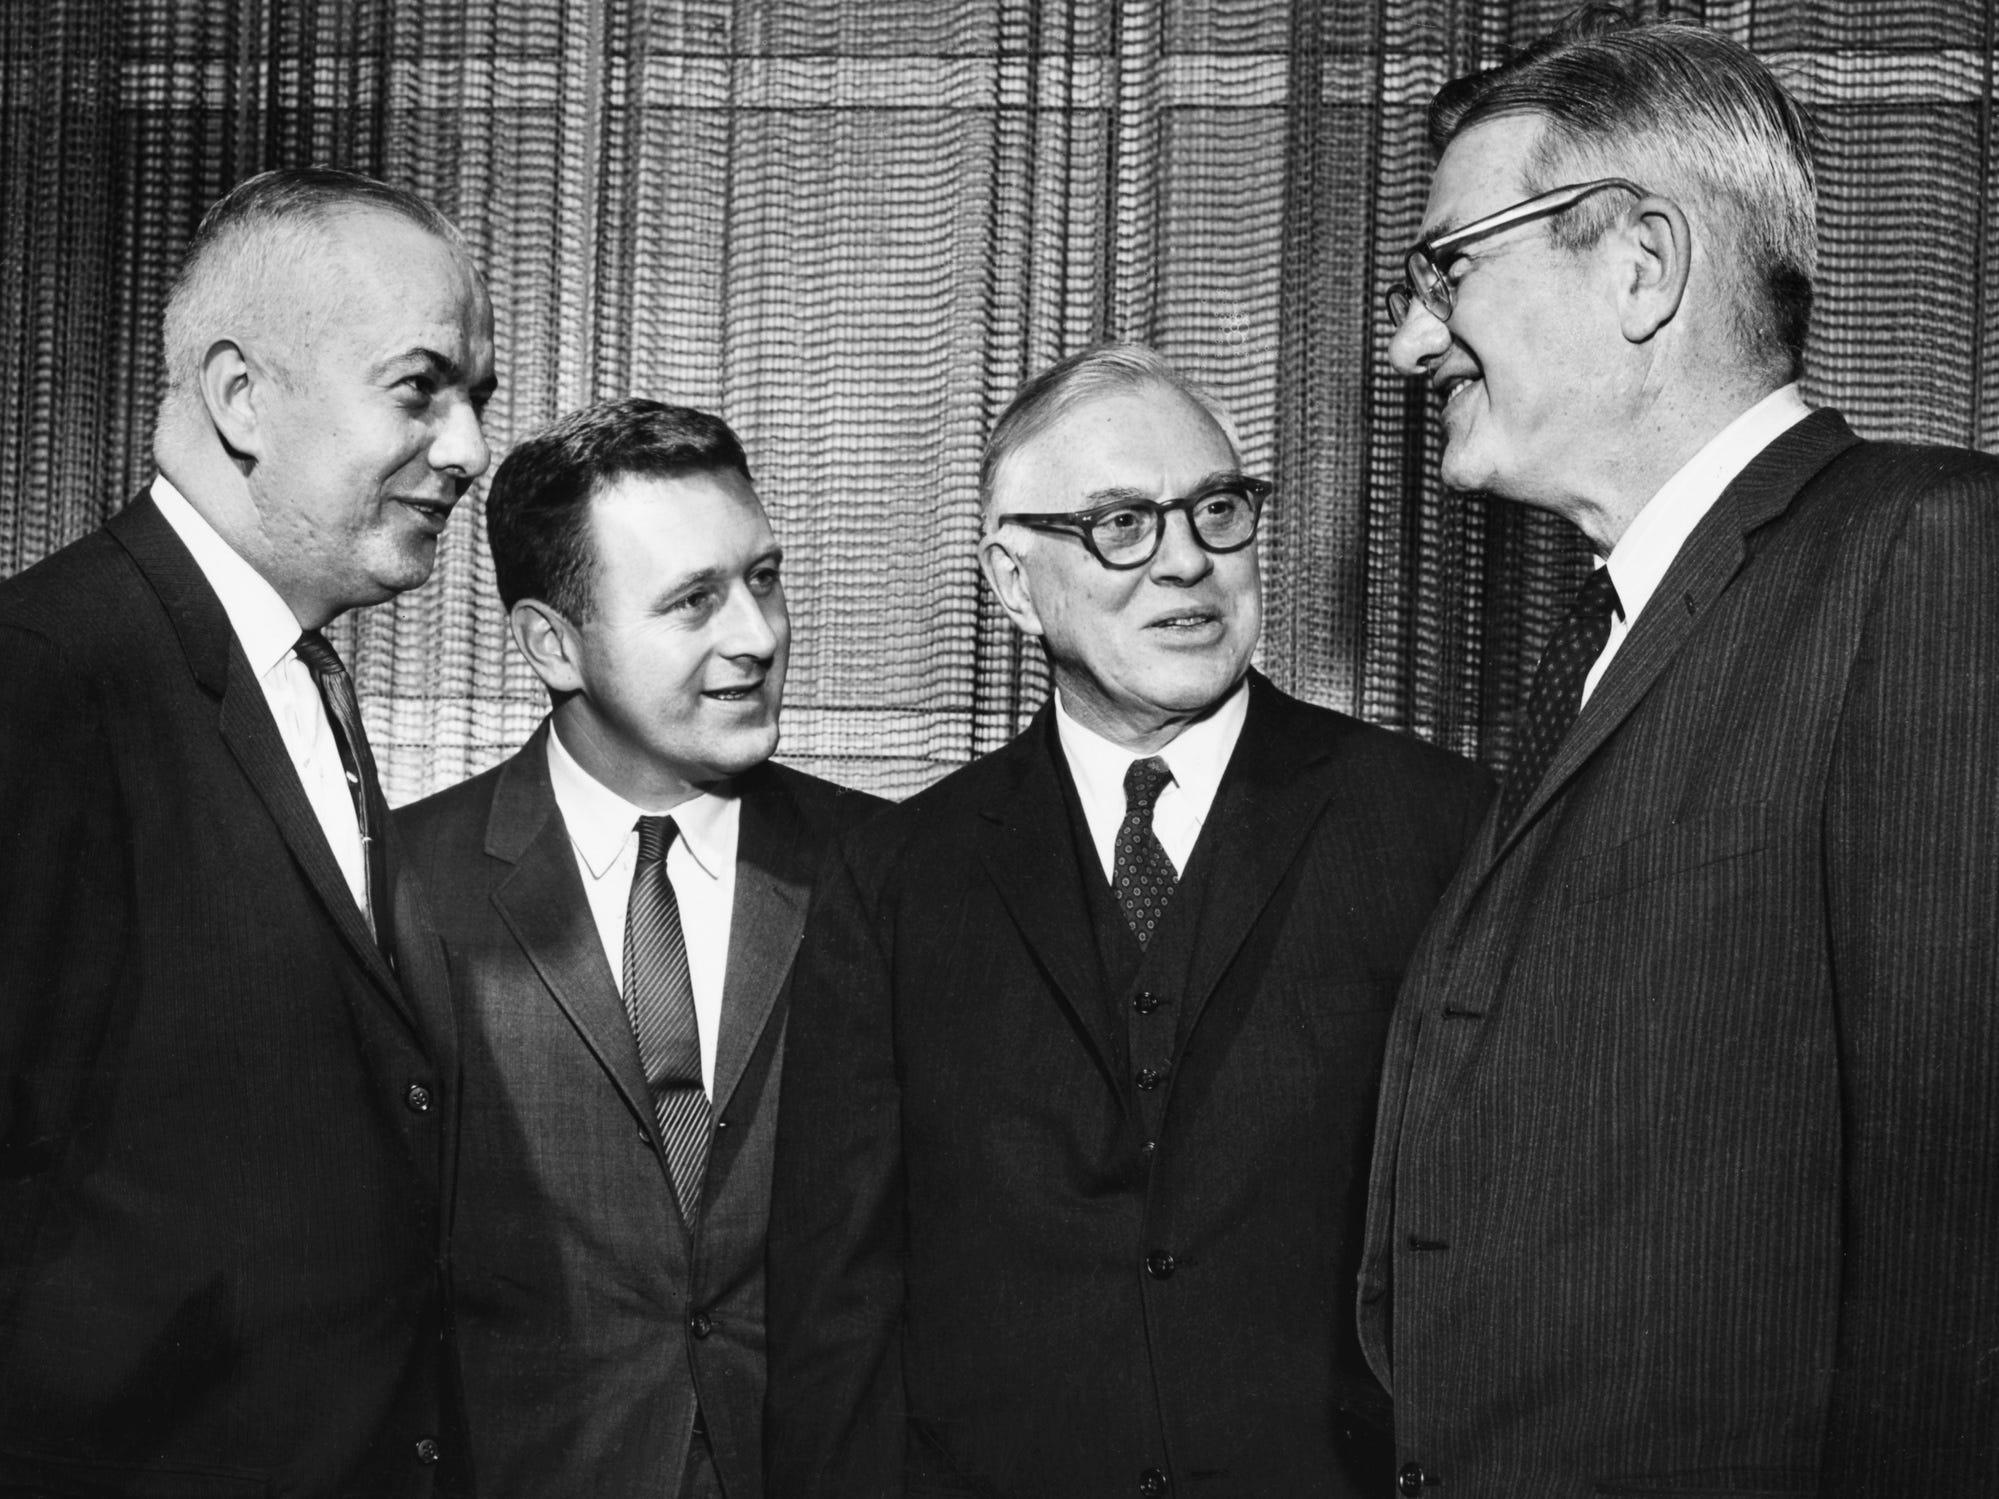 Wayne Whitt, left, John Seigenthaler and Nat Caldwell, right, of The Tennessean talk with Louis Lyons, second from right, curator of the Nieman Foundation at Harvard, on Jan. 22, 1963.